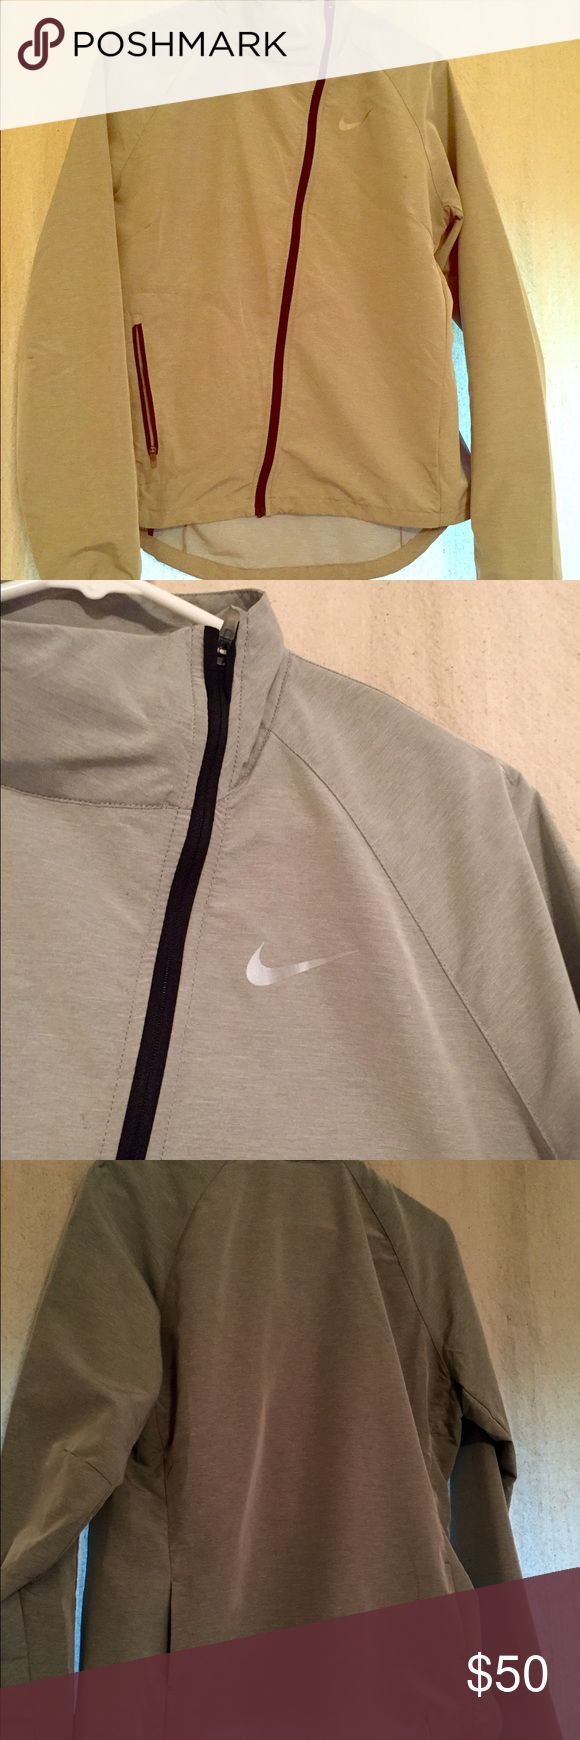 Nike Asymmetrical Jacket Lightweight, waterproof jacket. Perfect layering or transitional piece. It's a light grey color. Nike Jackets & Coats